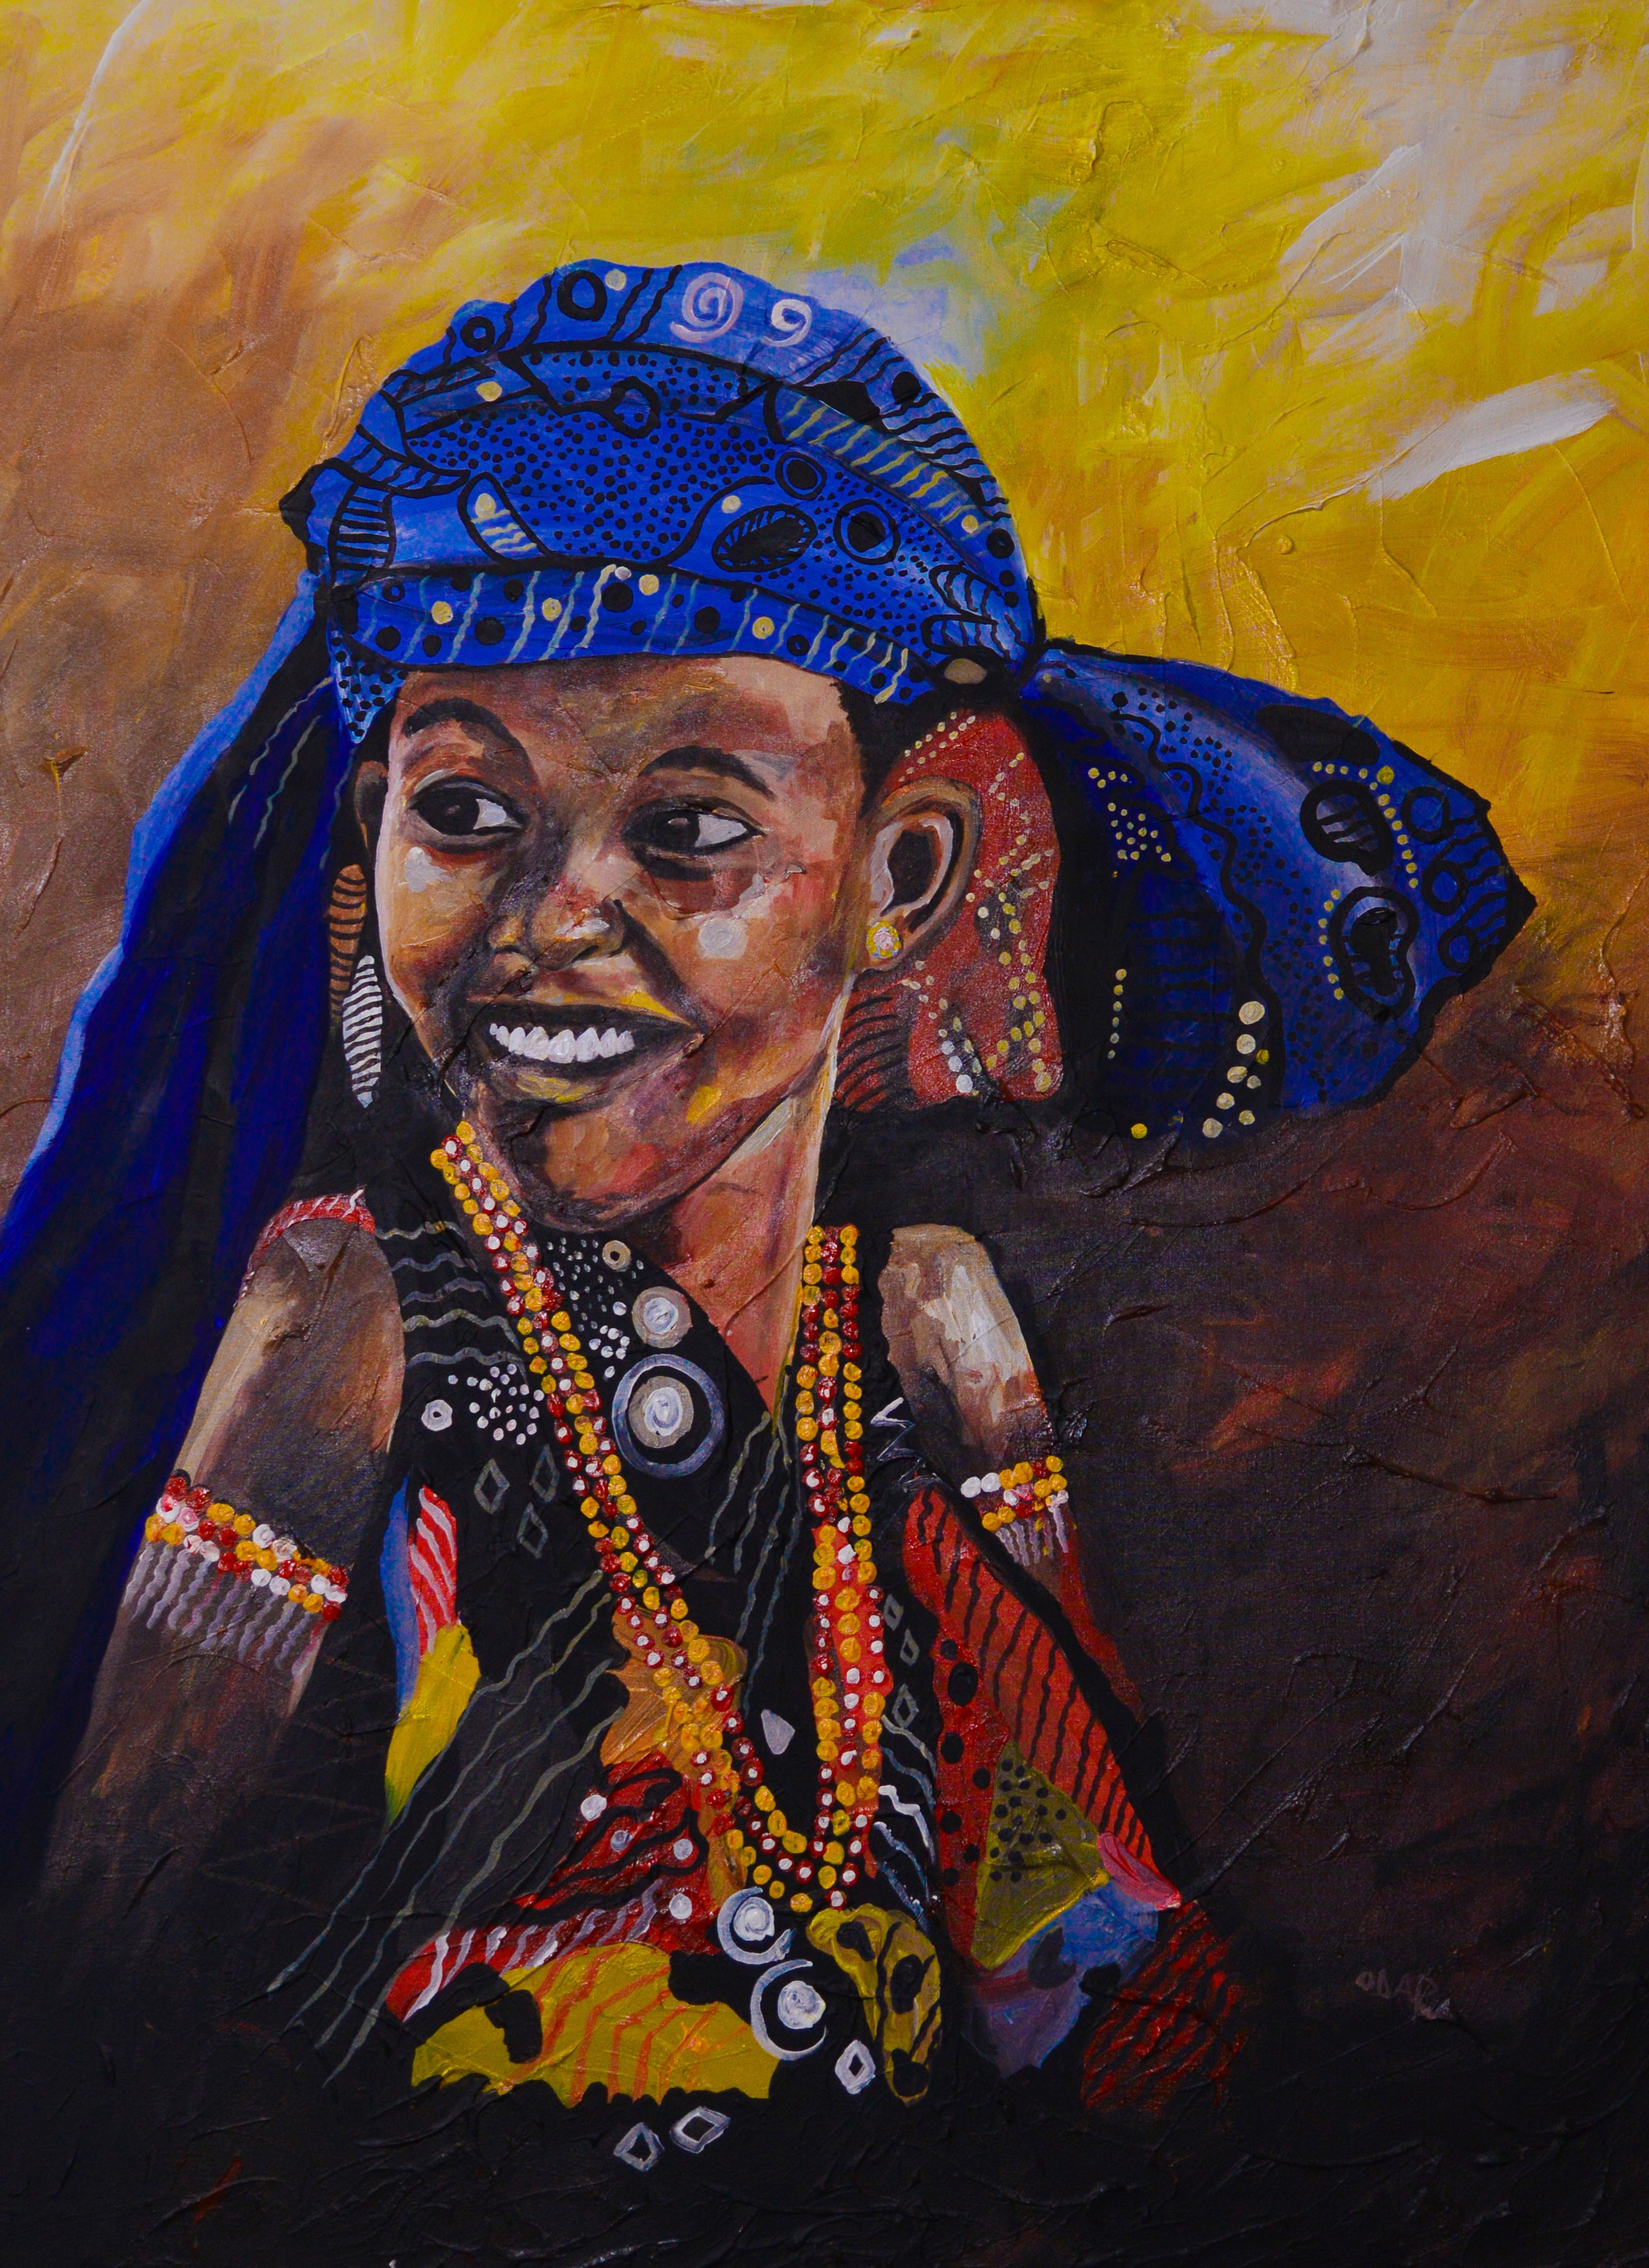 Portrait of a young woman by Rwandan artist, Ganza Odart